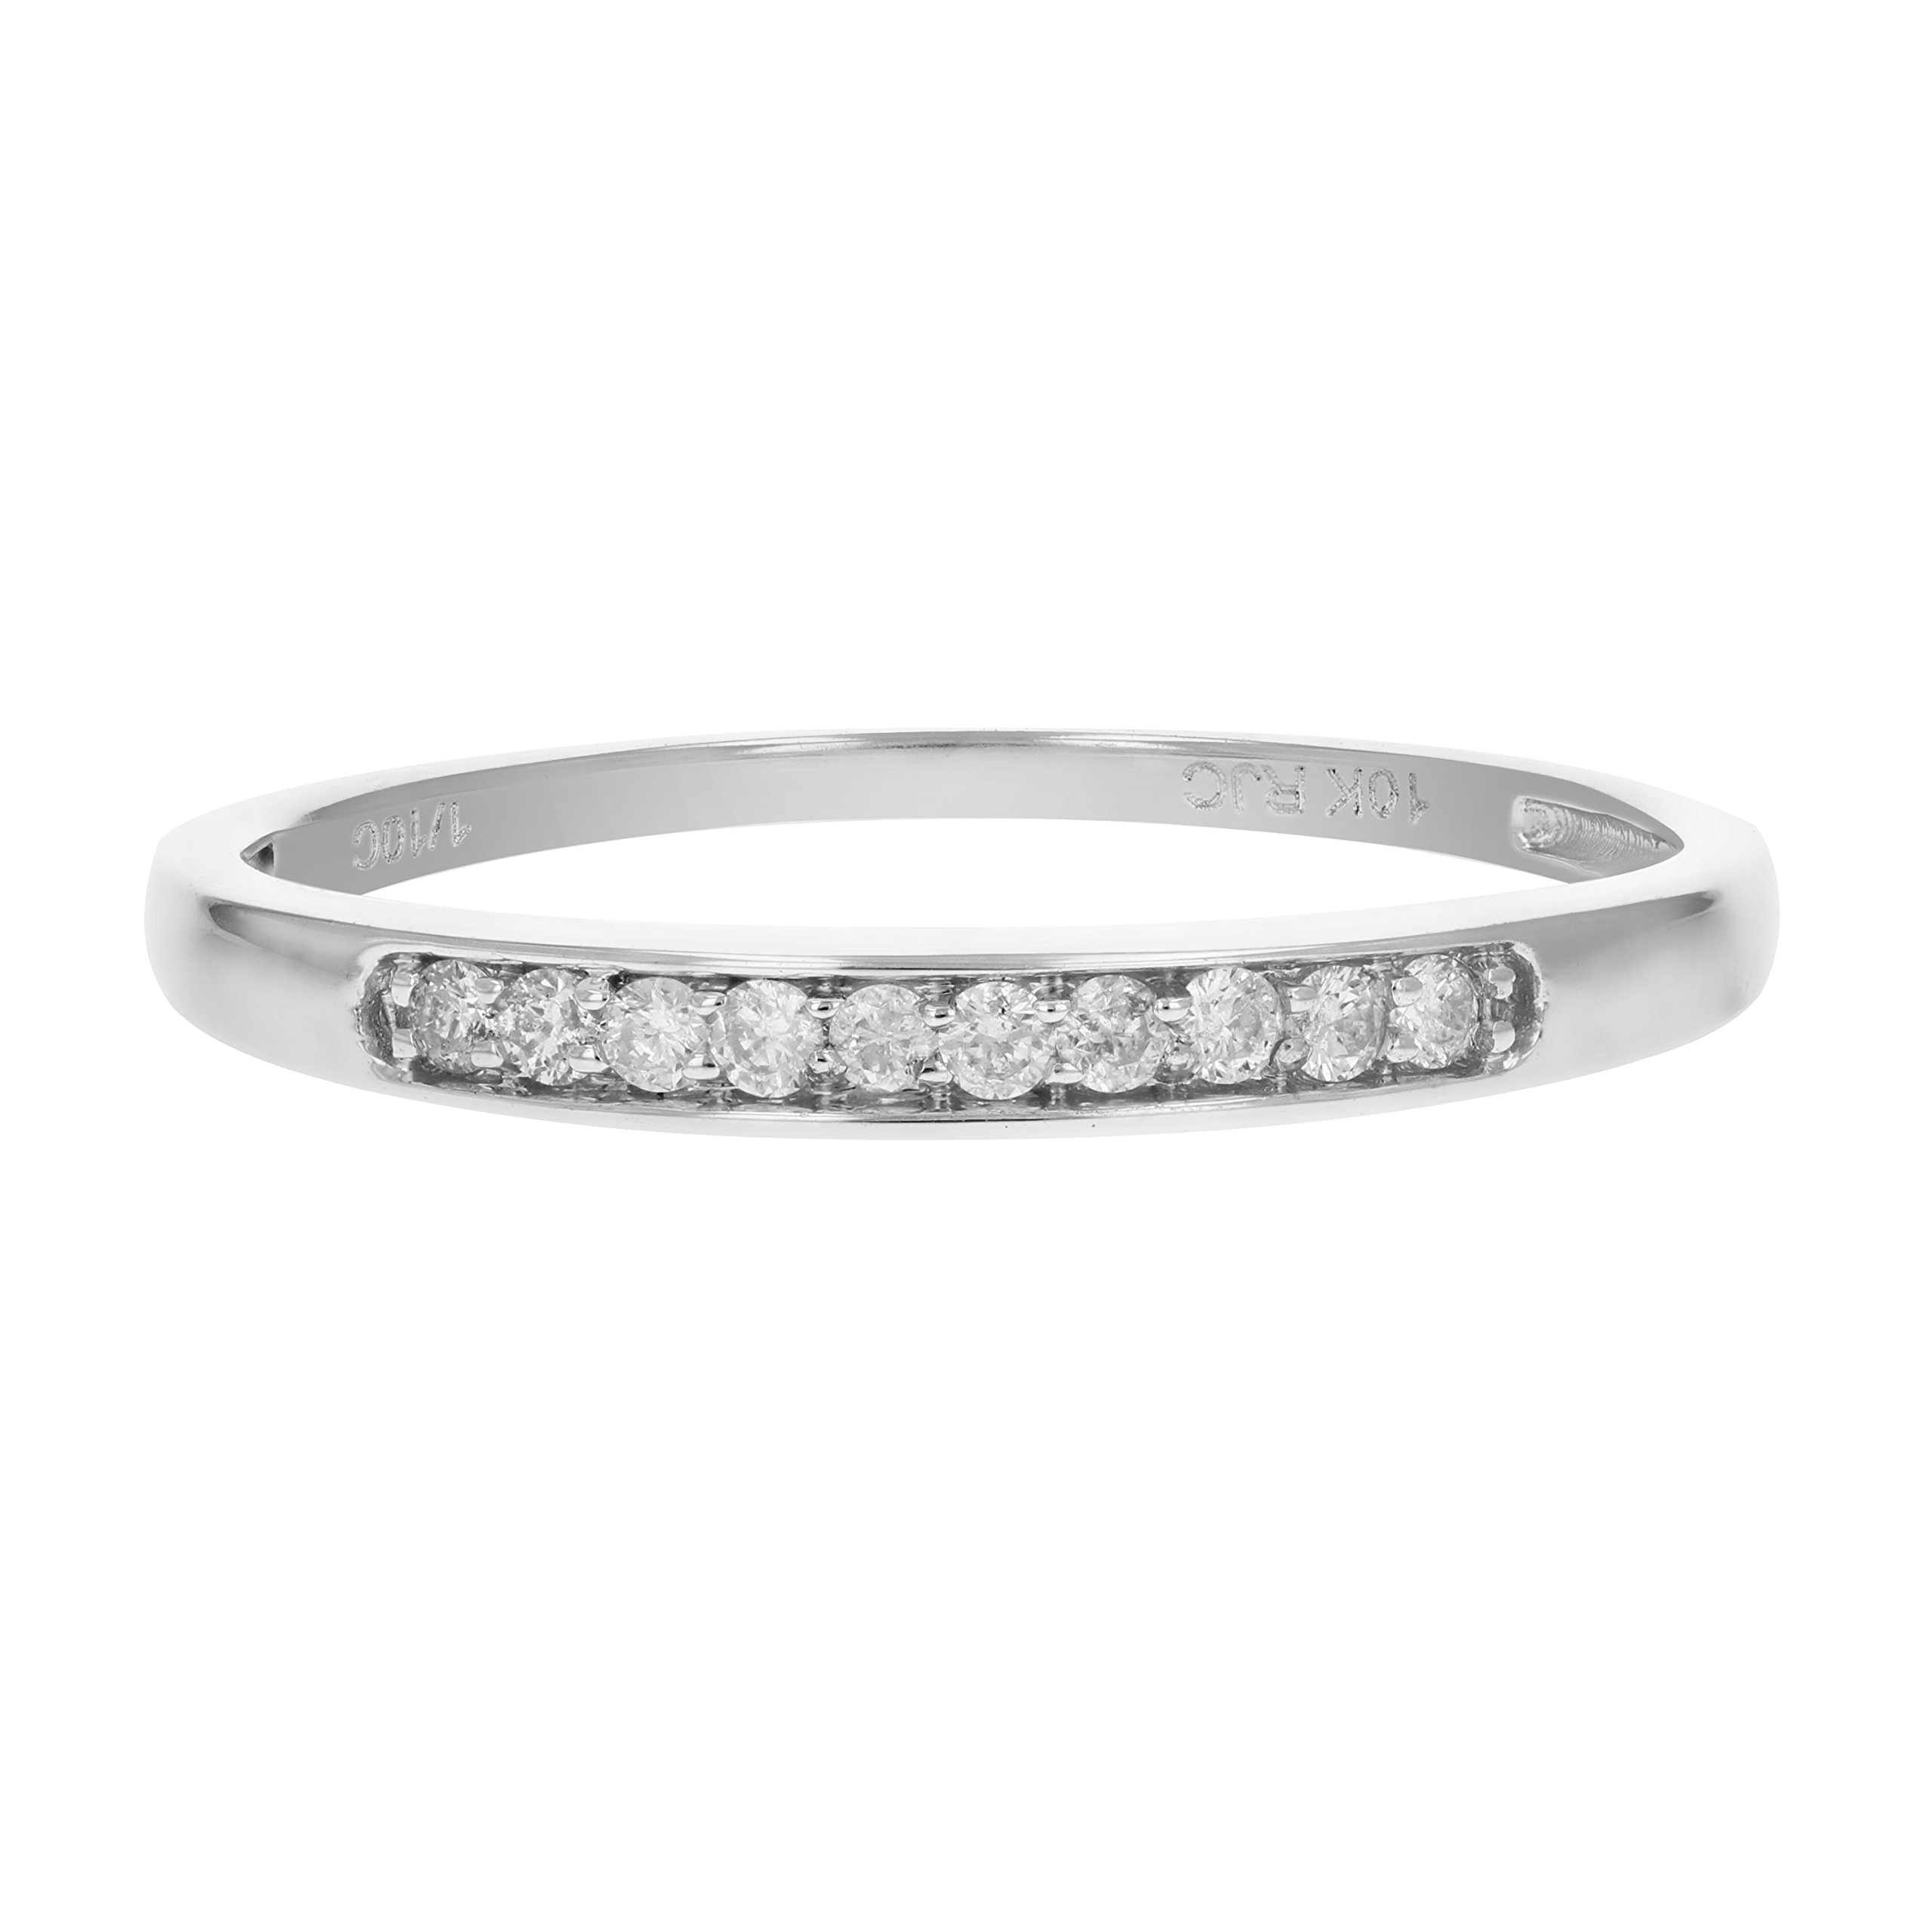 1/10 cttw Diamond Wedding Band 10K White Gold Size 10 by Vir Jewels (Image #4)